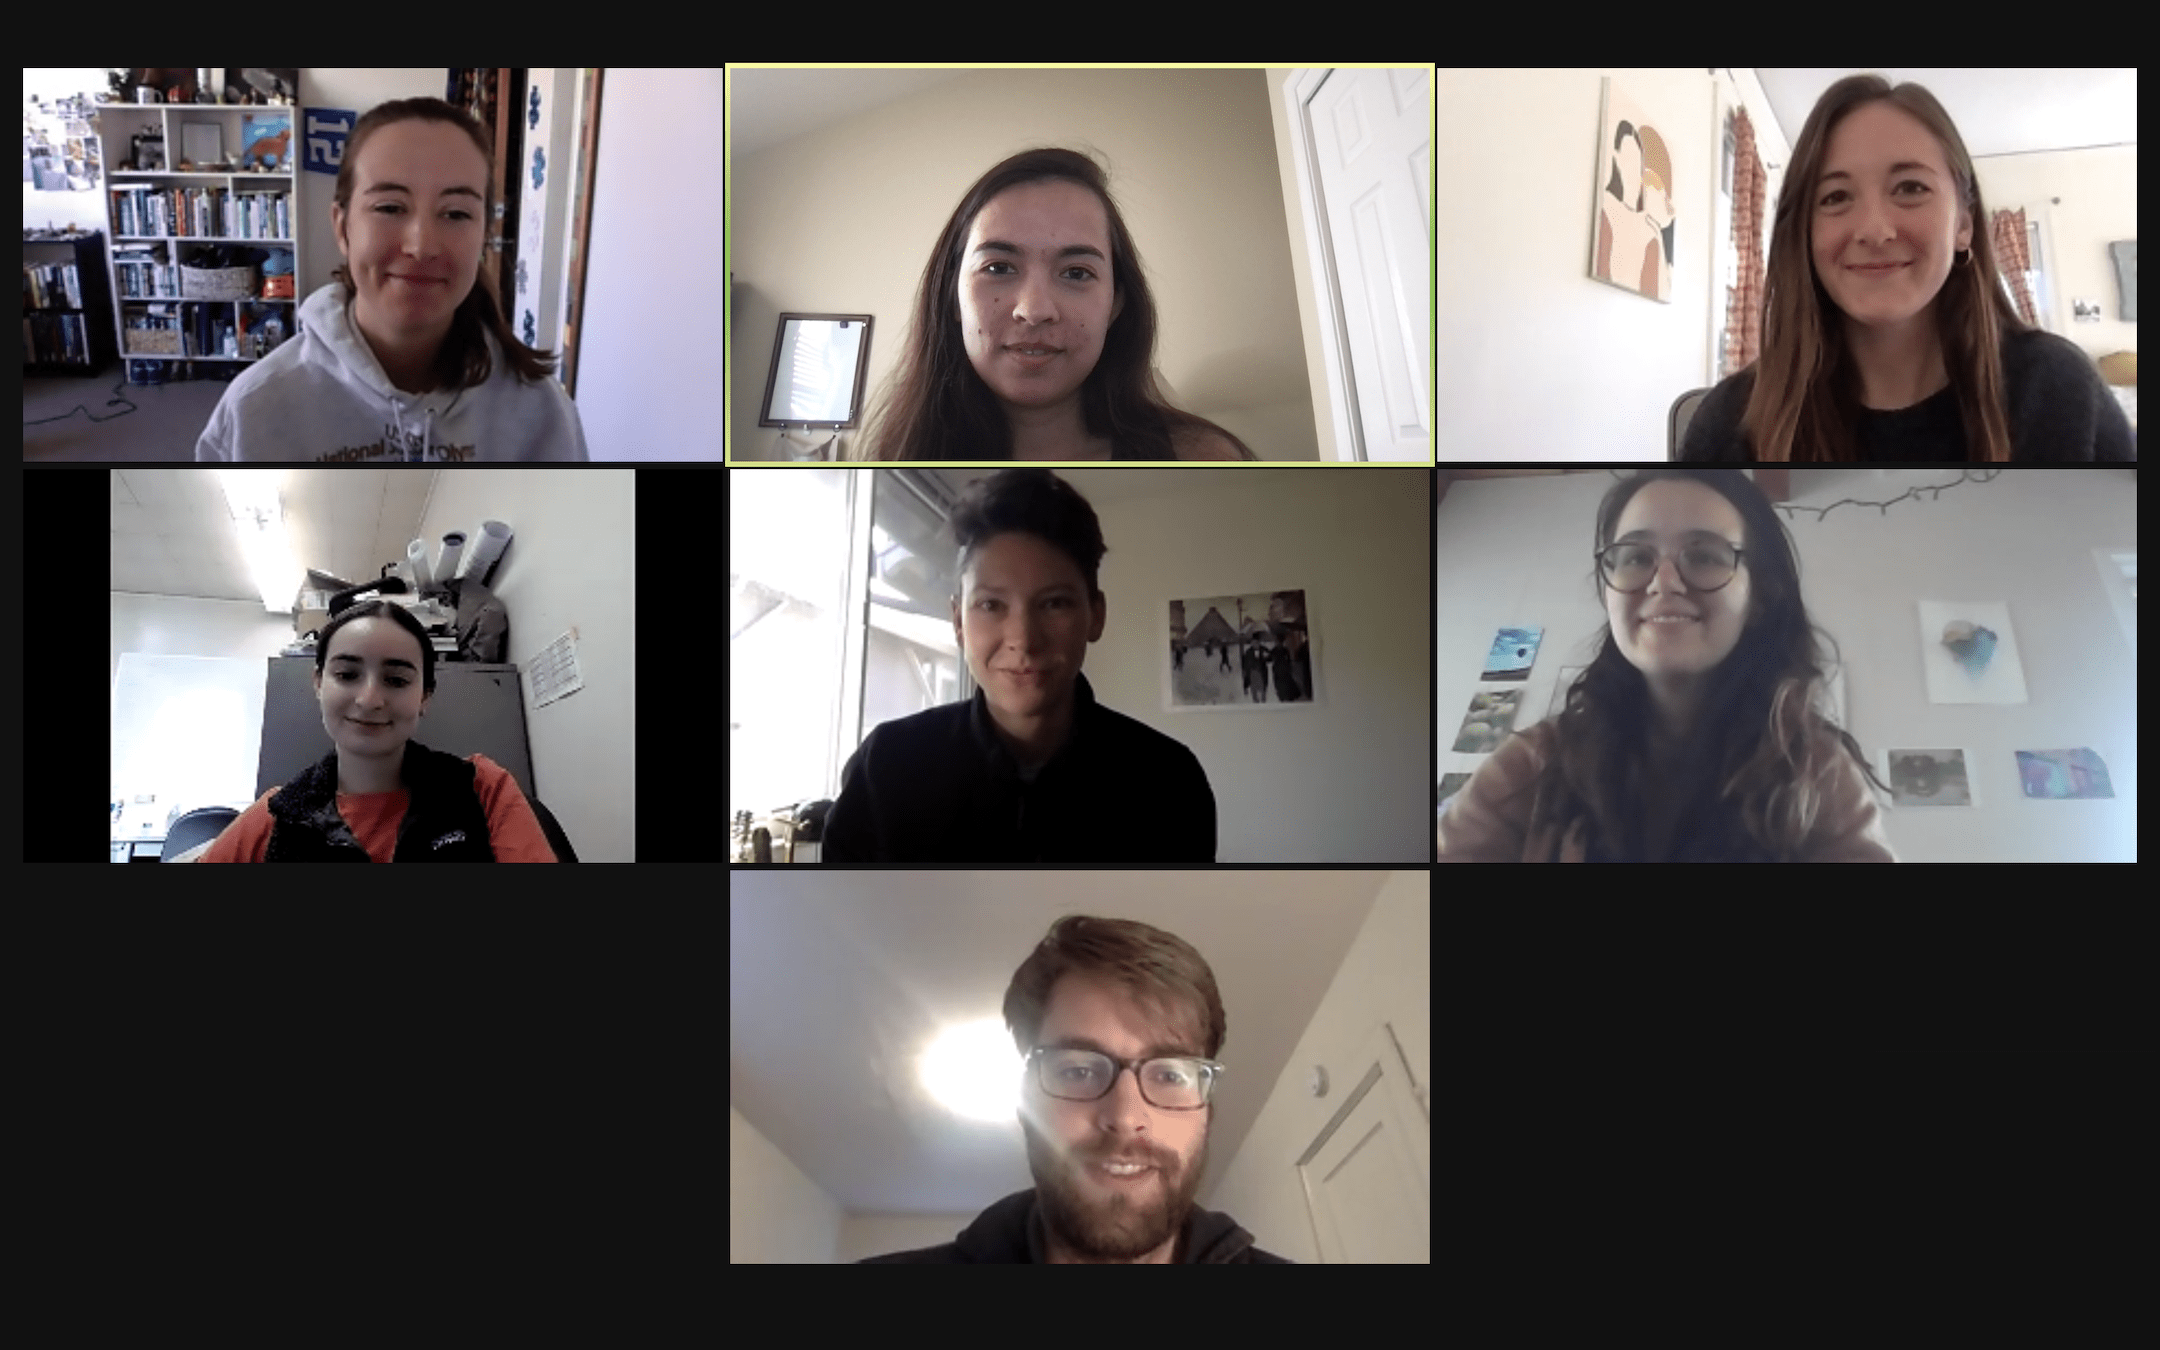 BSR editorial staff meeting over Zoom